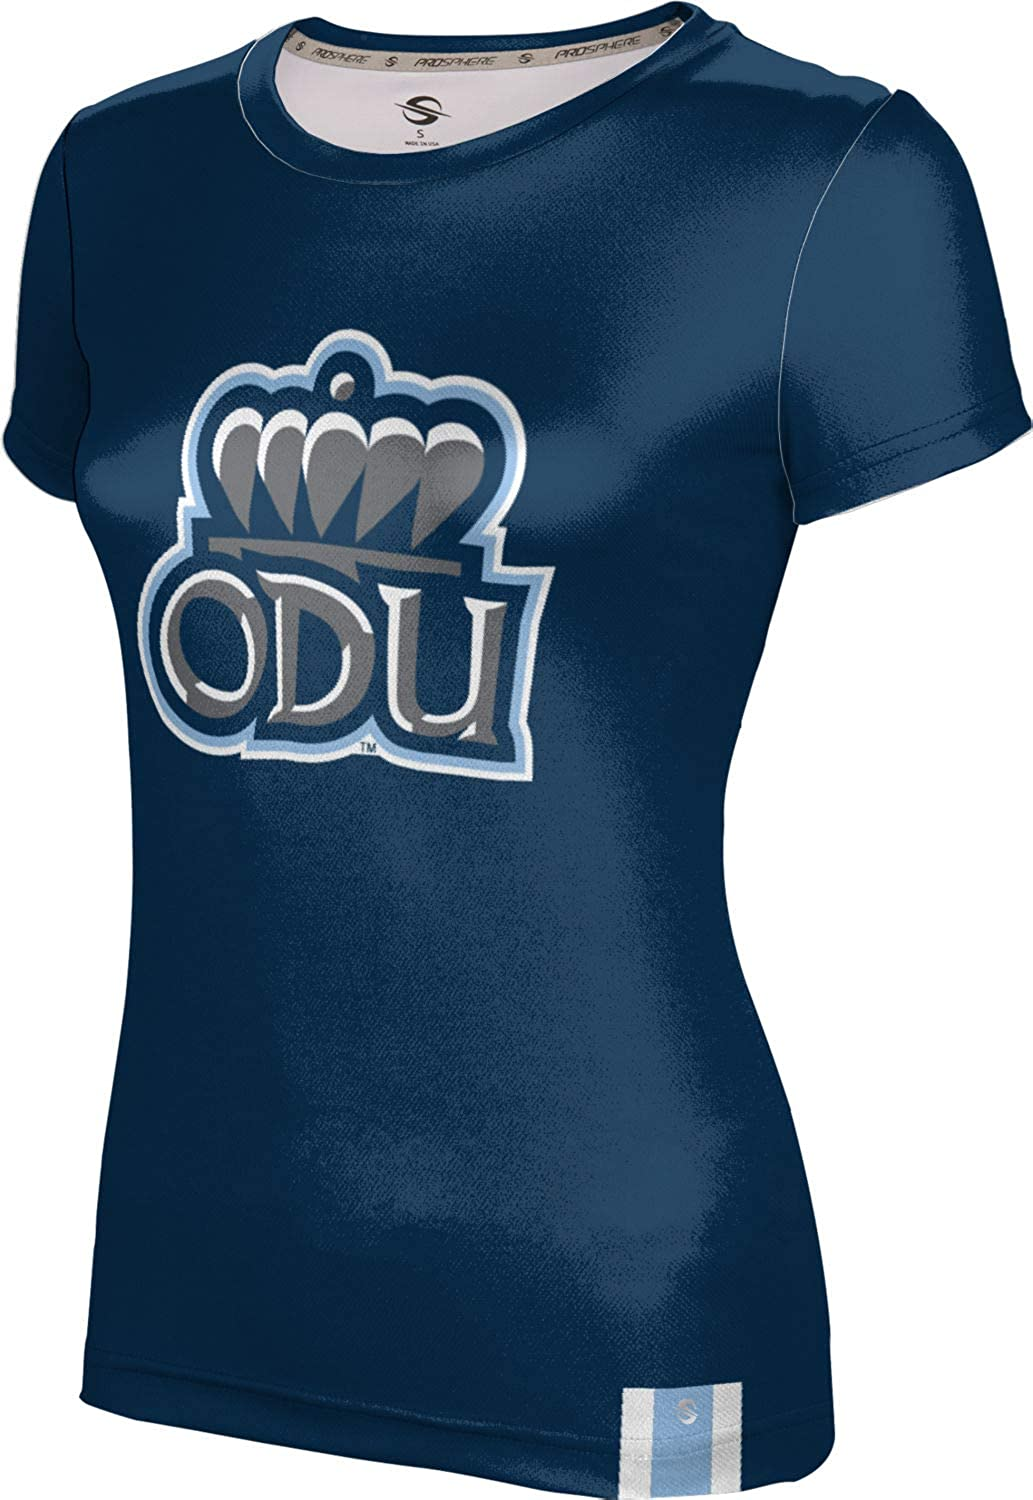 ProSphere Old Dominion University Girls' Performance T-Shirt (Solid)